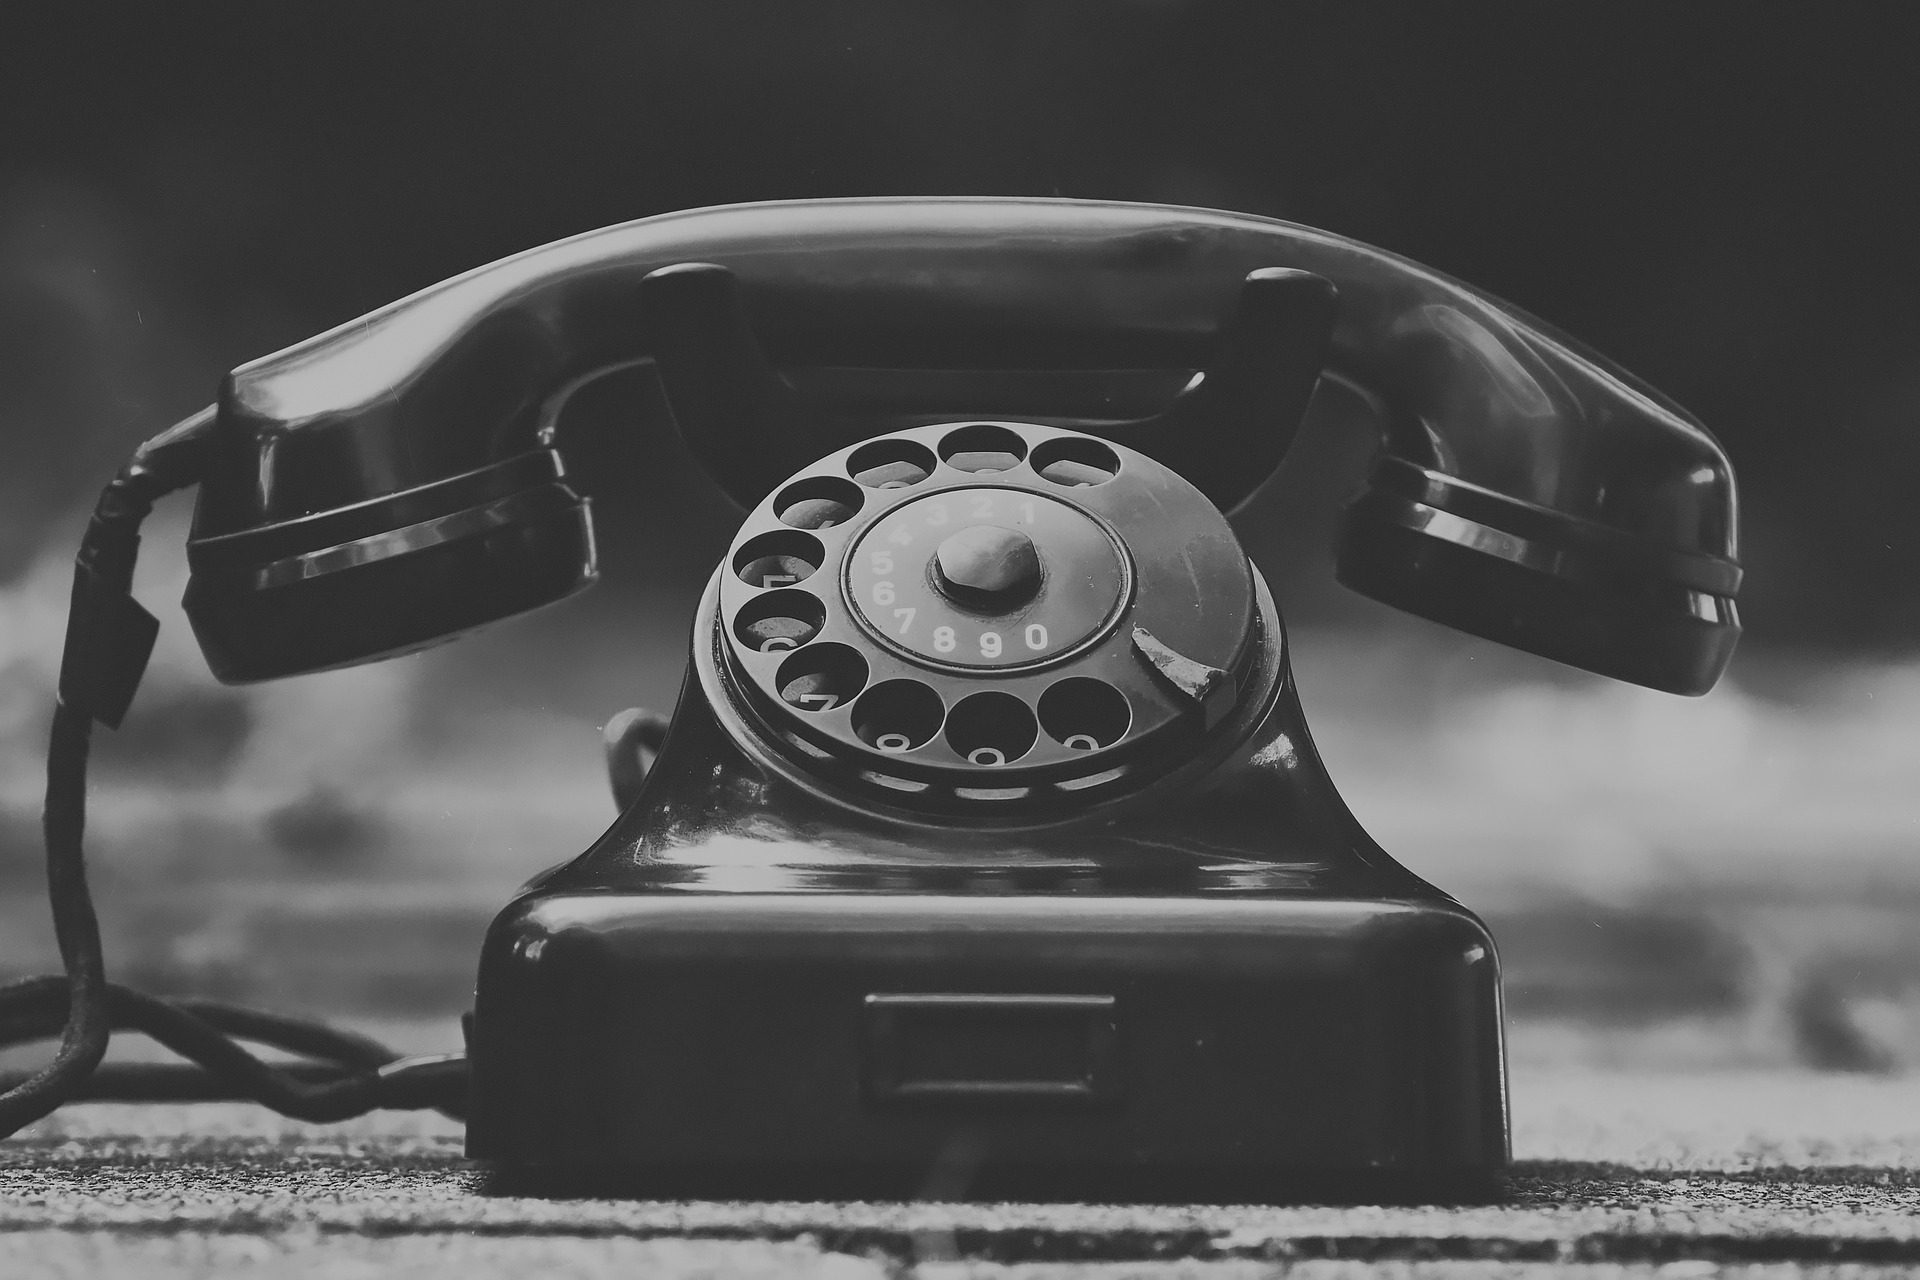 image of black and white telephone